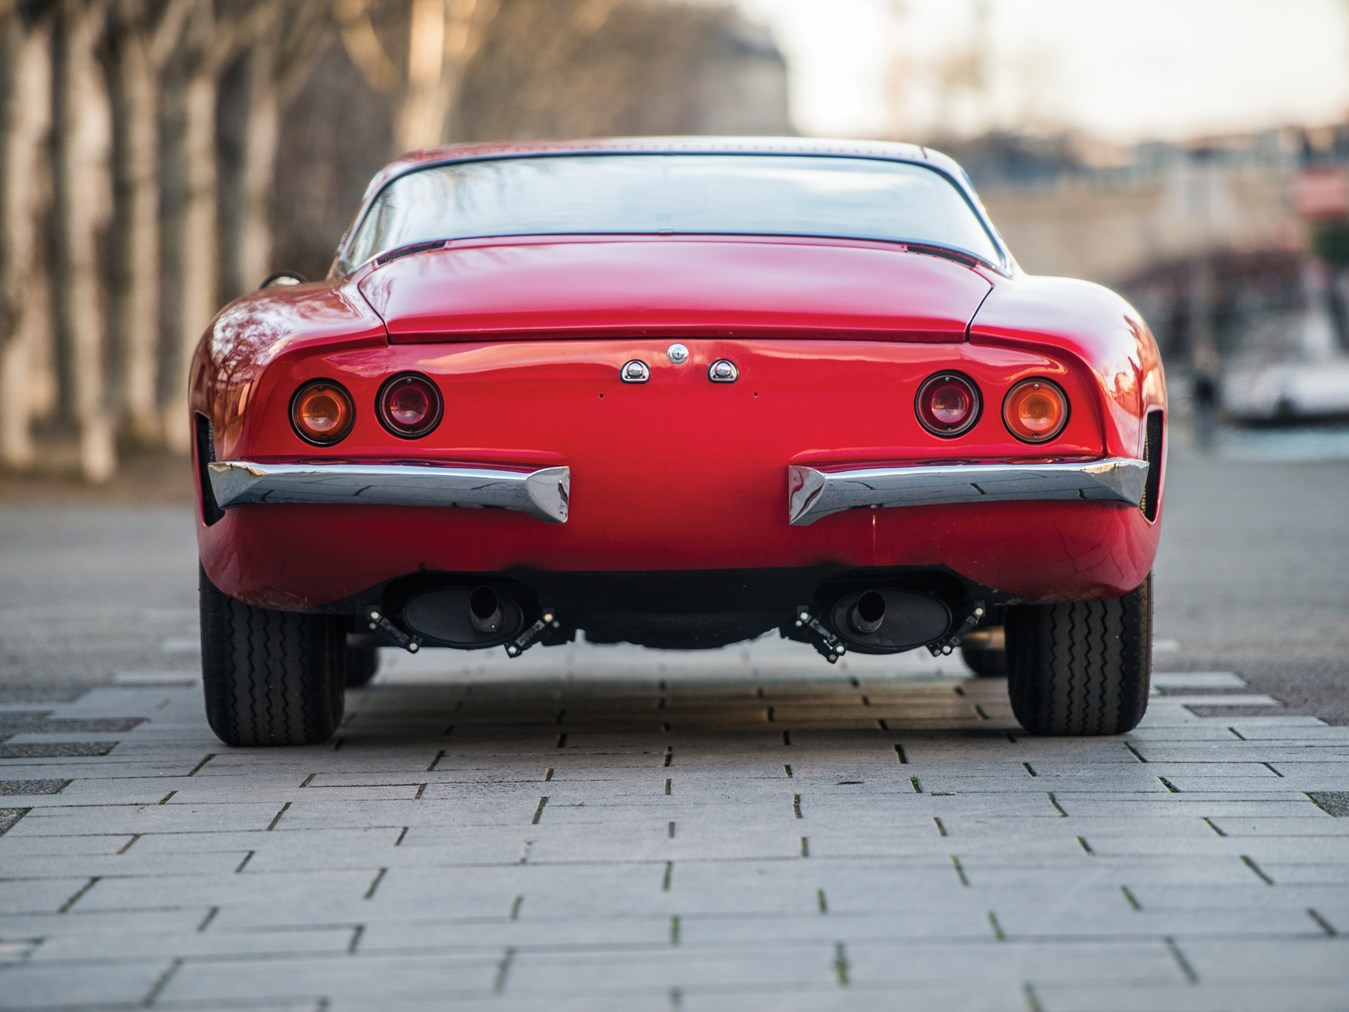 Iso grifo voiture collection sotheby ferrari bizzarrini